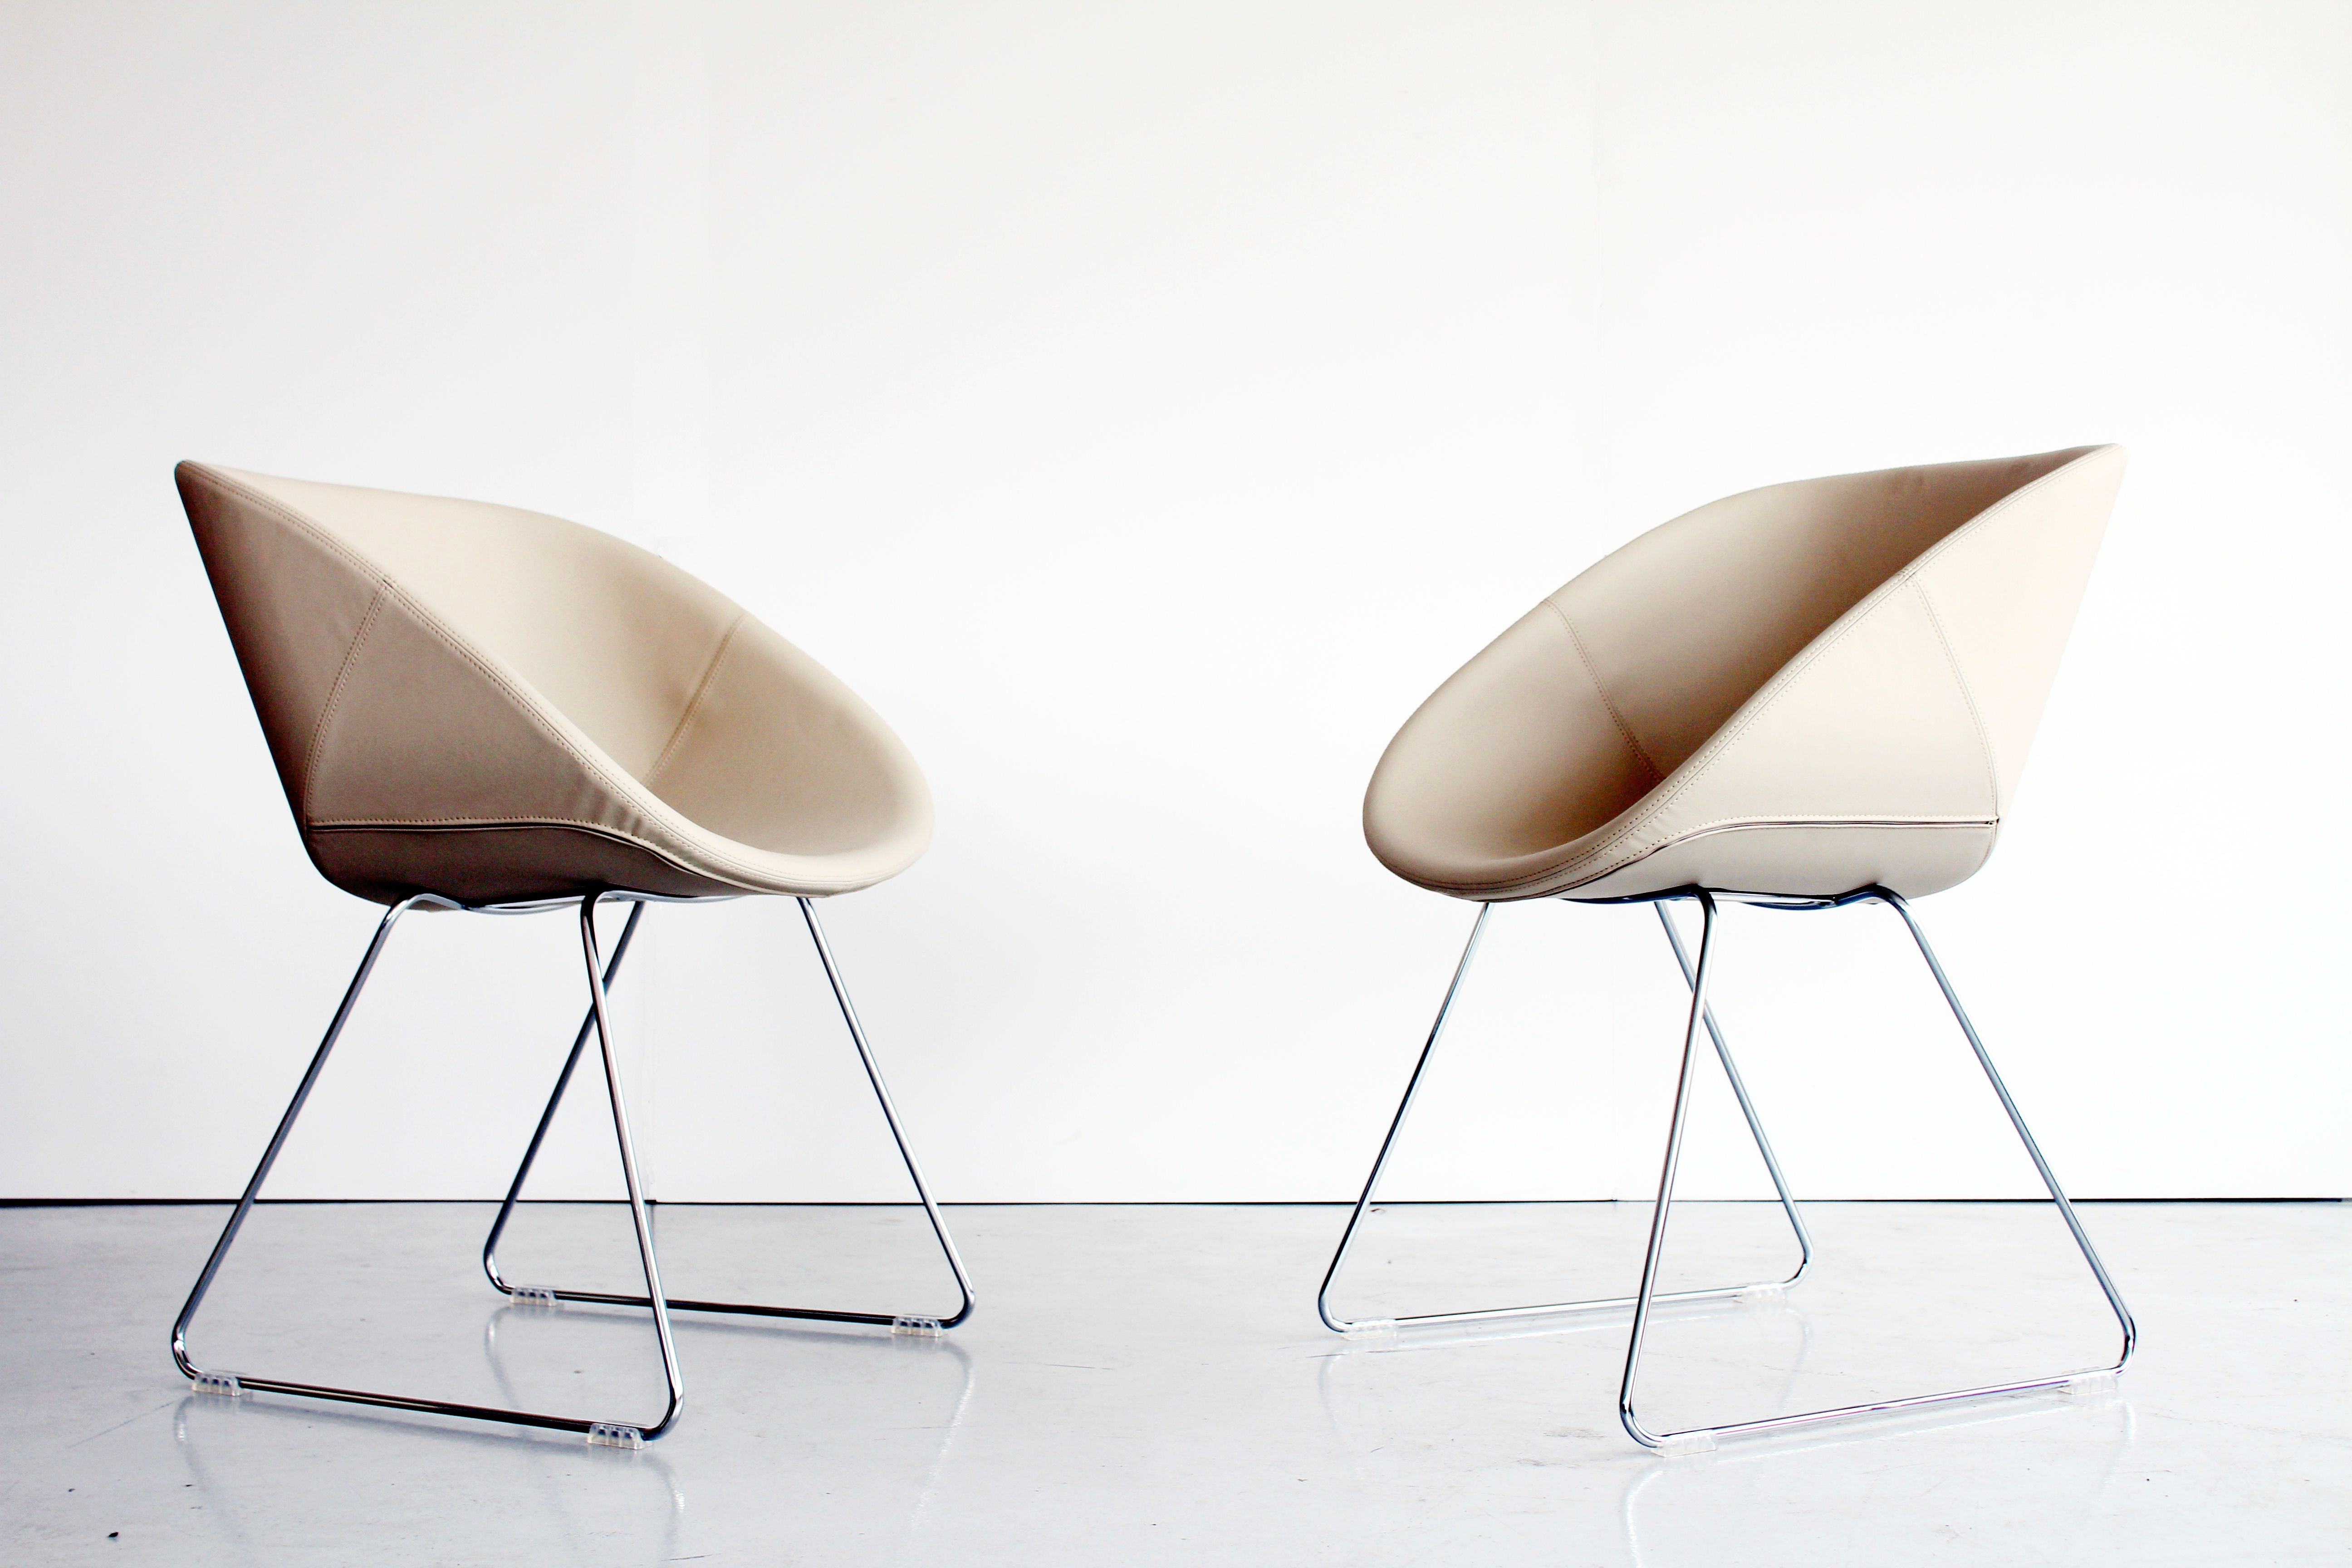 ... A new base for Hibiscus #chairs #design #madeinitaly